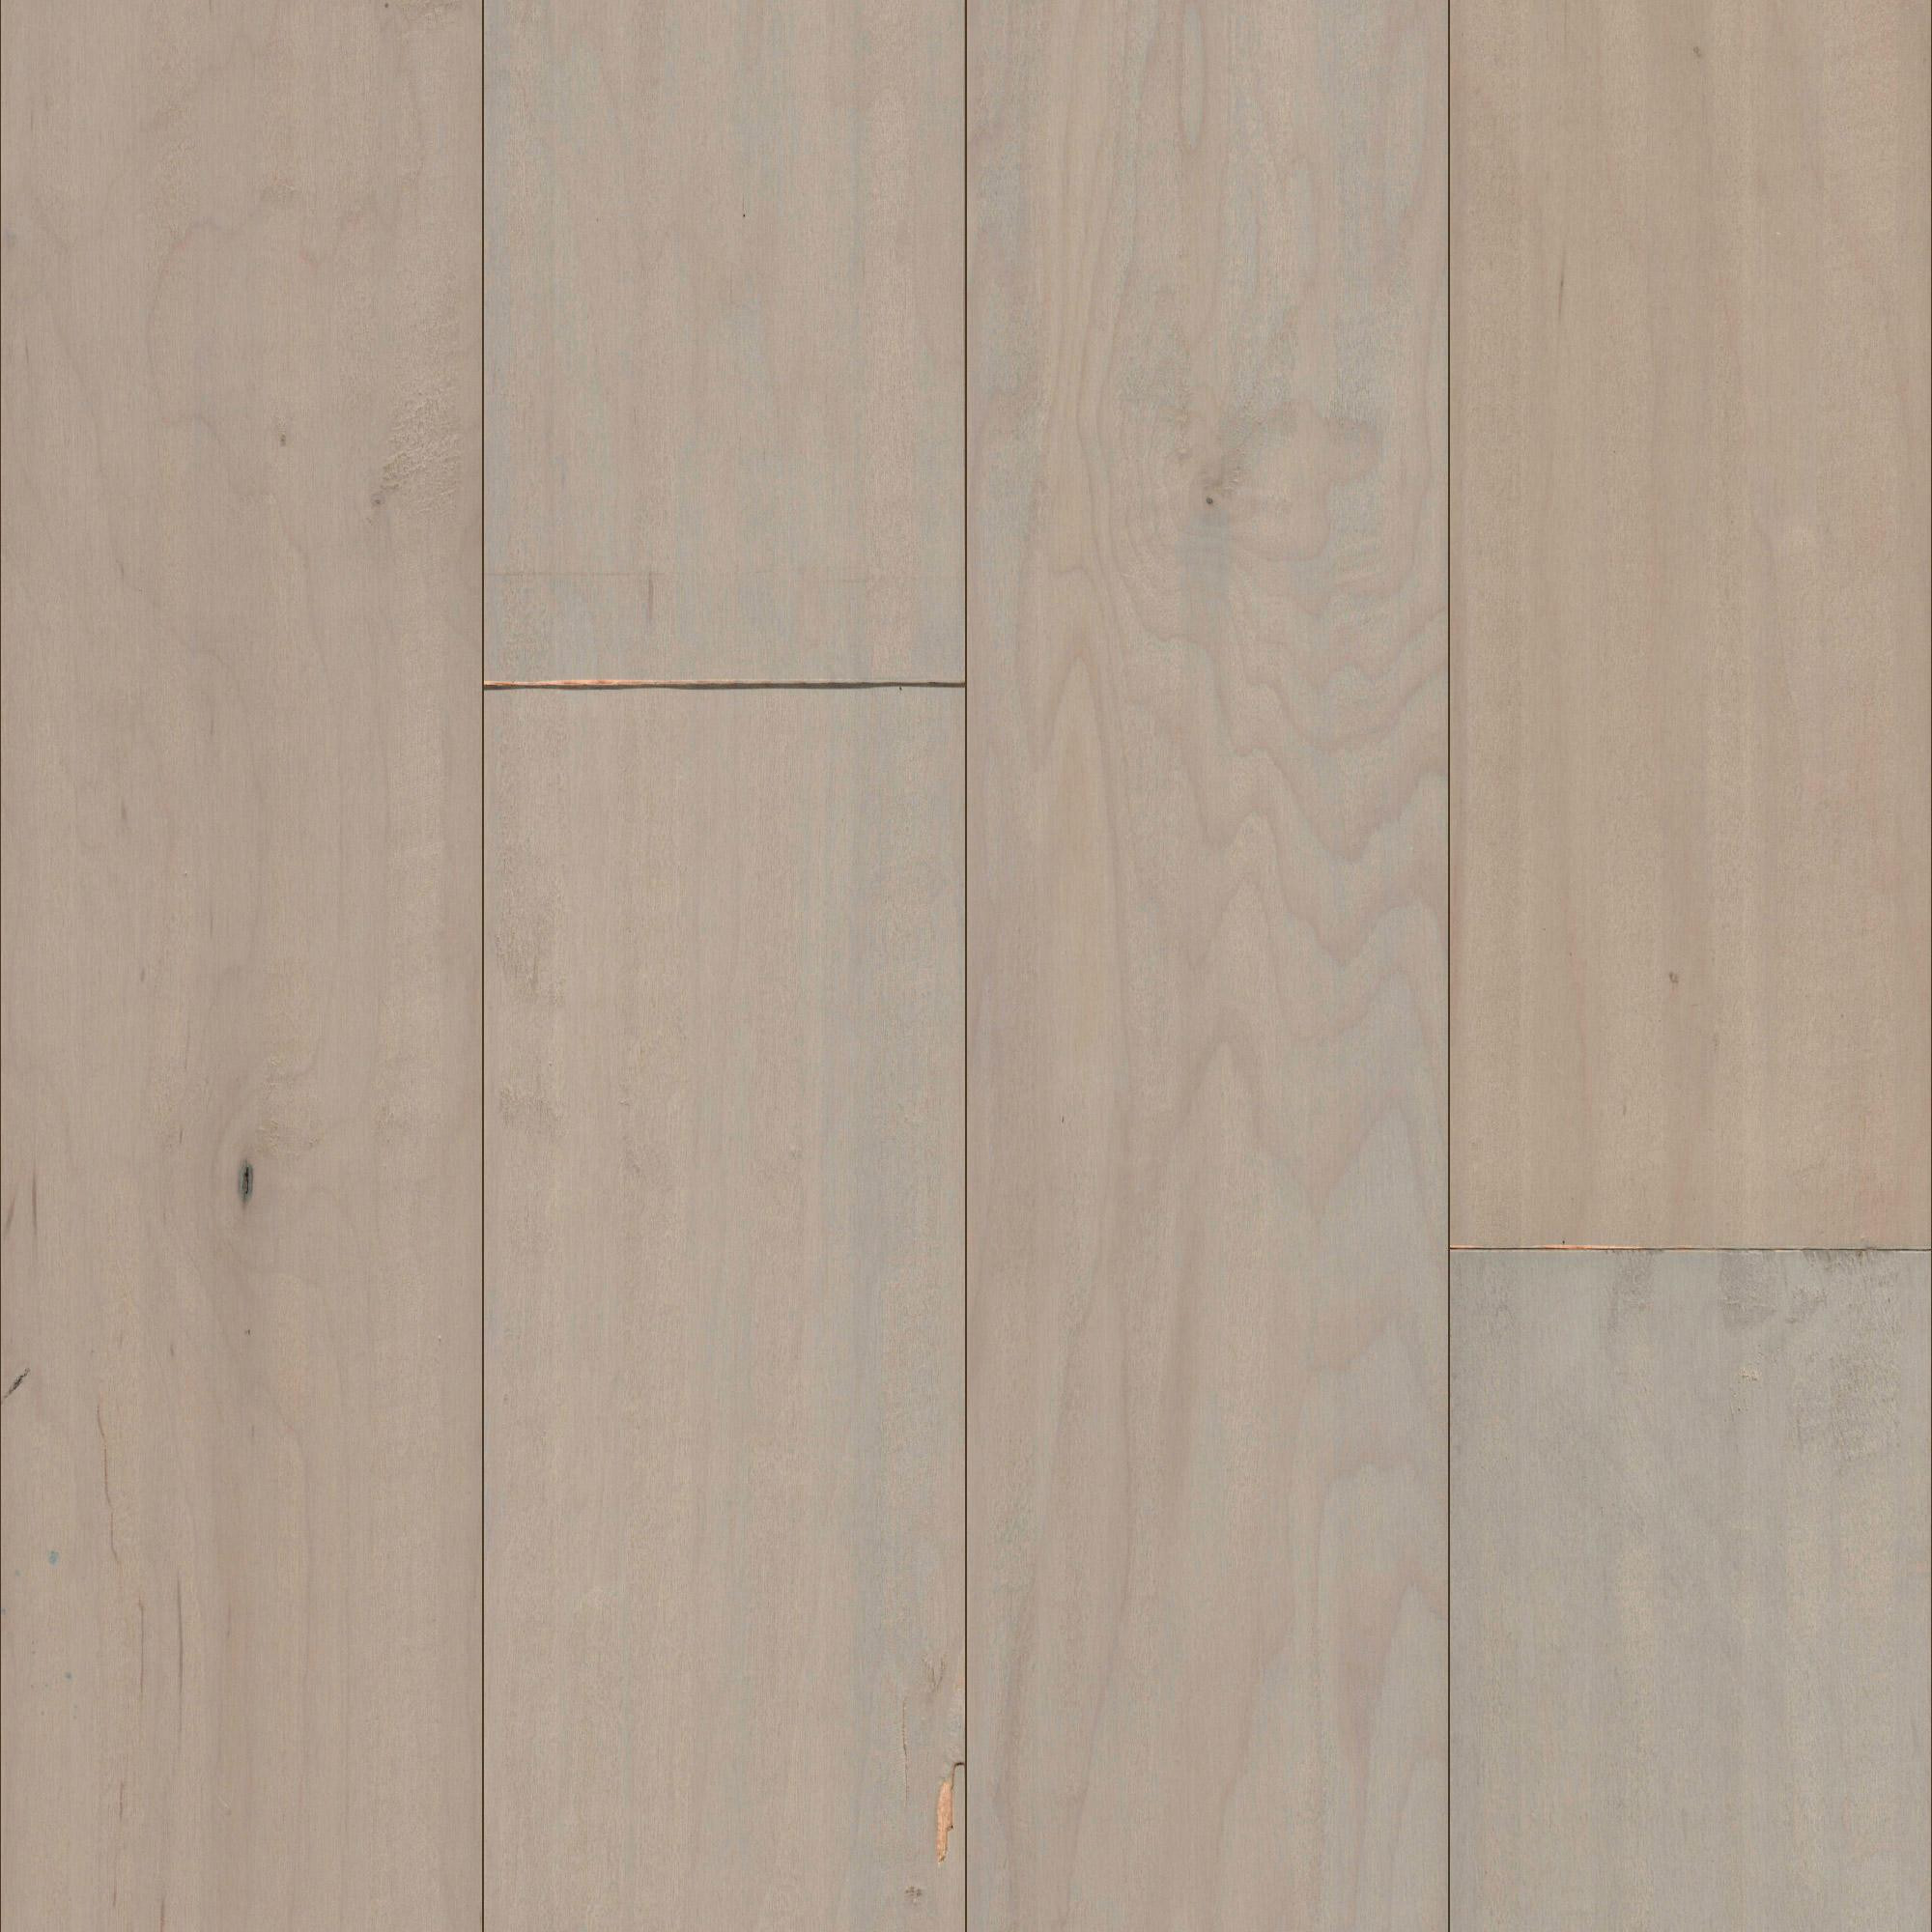 most popular engineered hardwood flooring color of mullican lincolnshire sculpted maple frost 5 engineered hardwood for mullican lincolnshire sculpted maple frost 5 engineered hardwood flooring